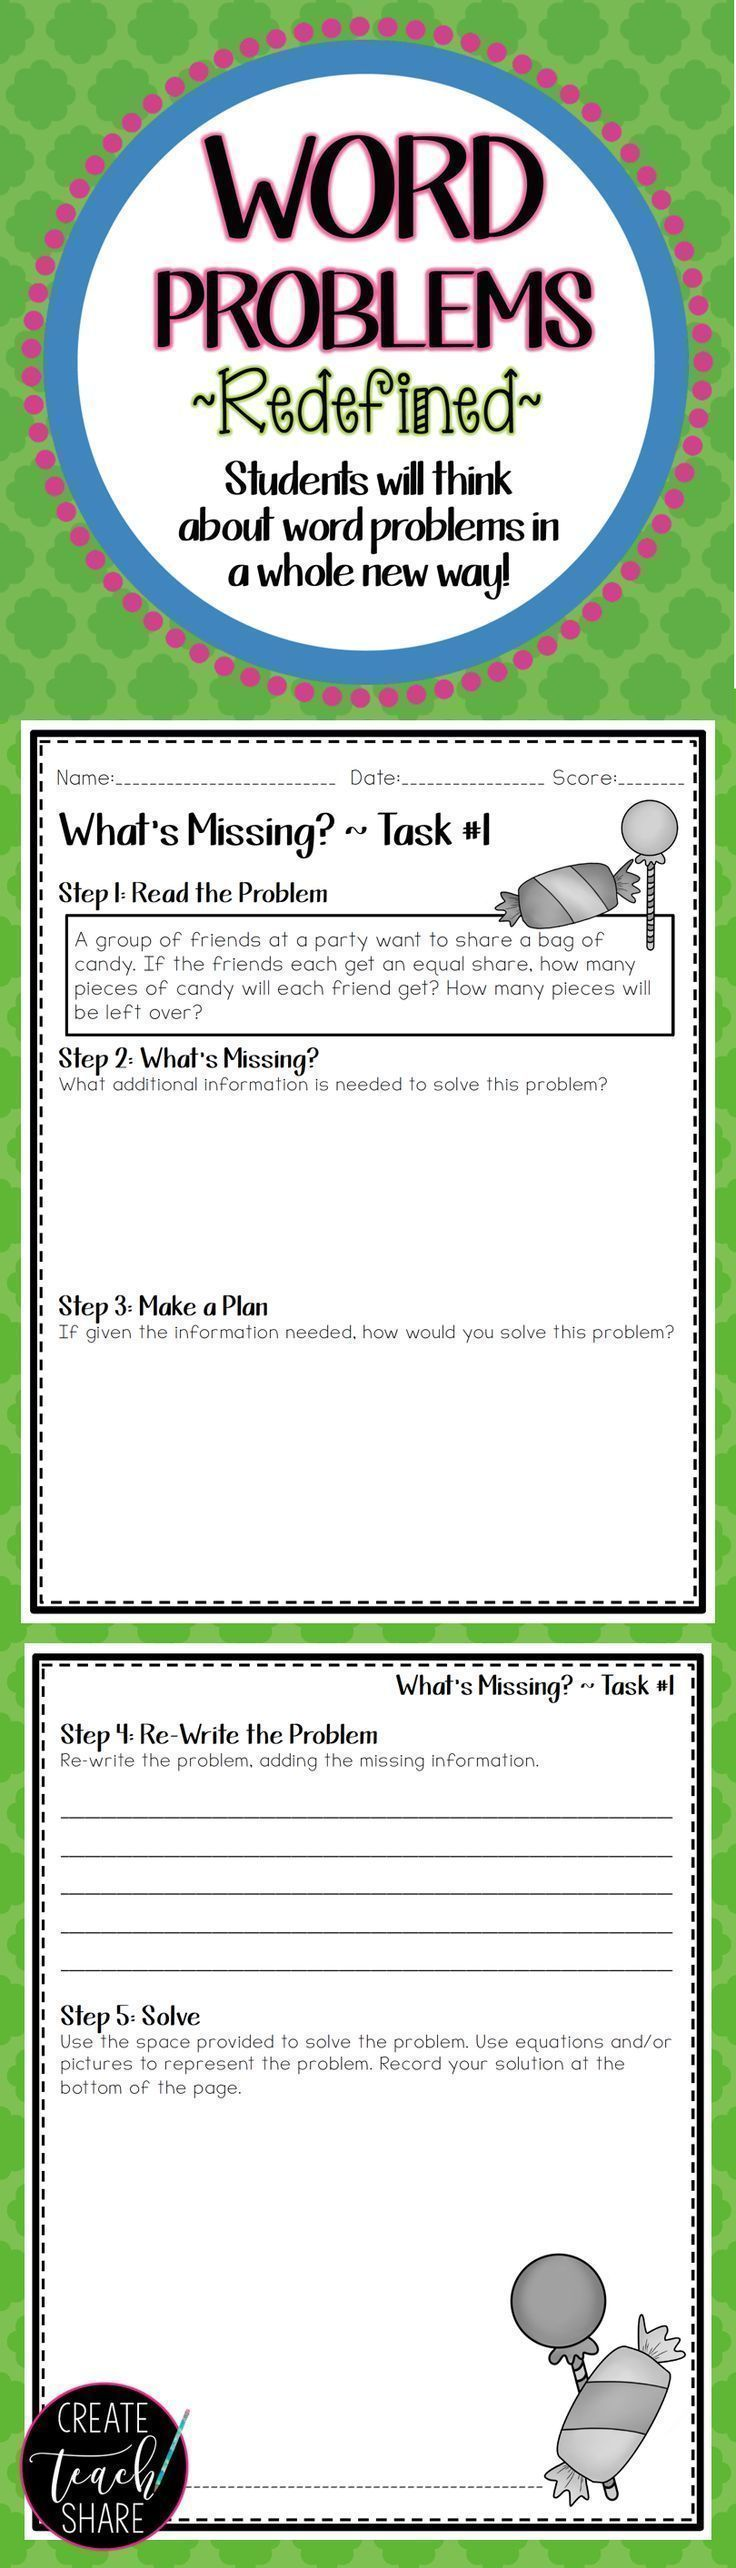 I was looking for strategies to increase student understanding of word  problems. This resource has